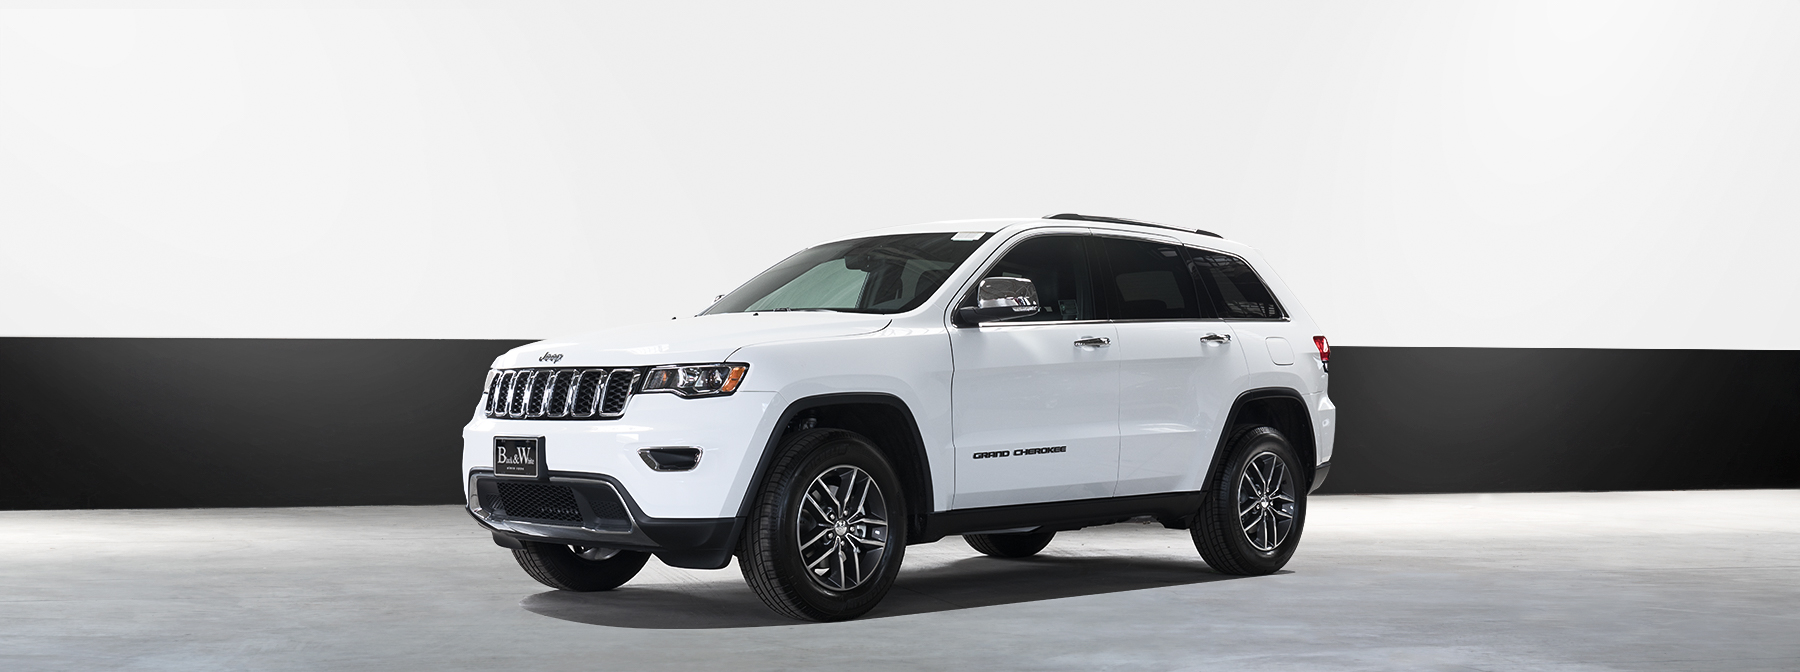 Jeep-Grand-Cherokee-in-Los-Angeles